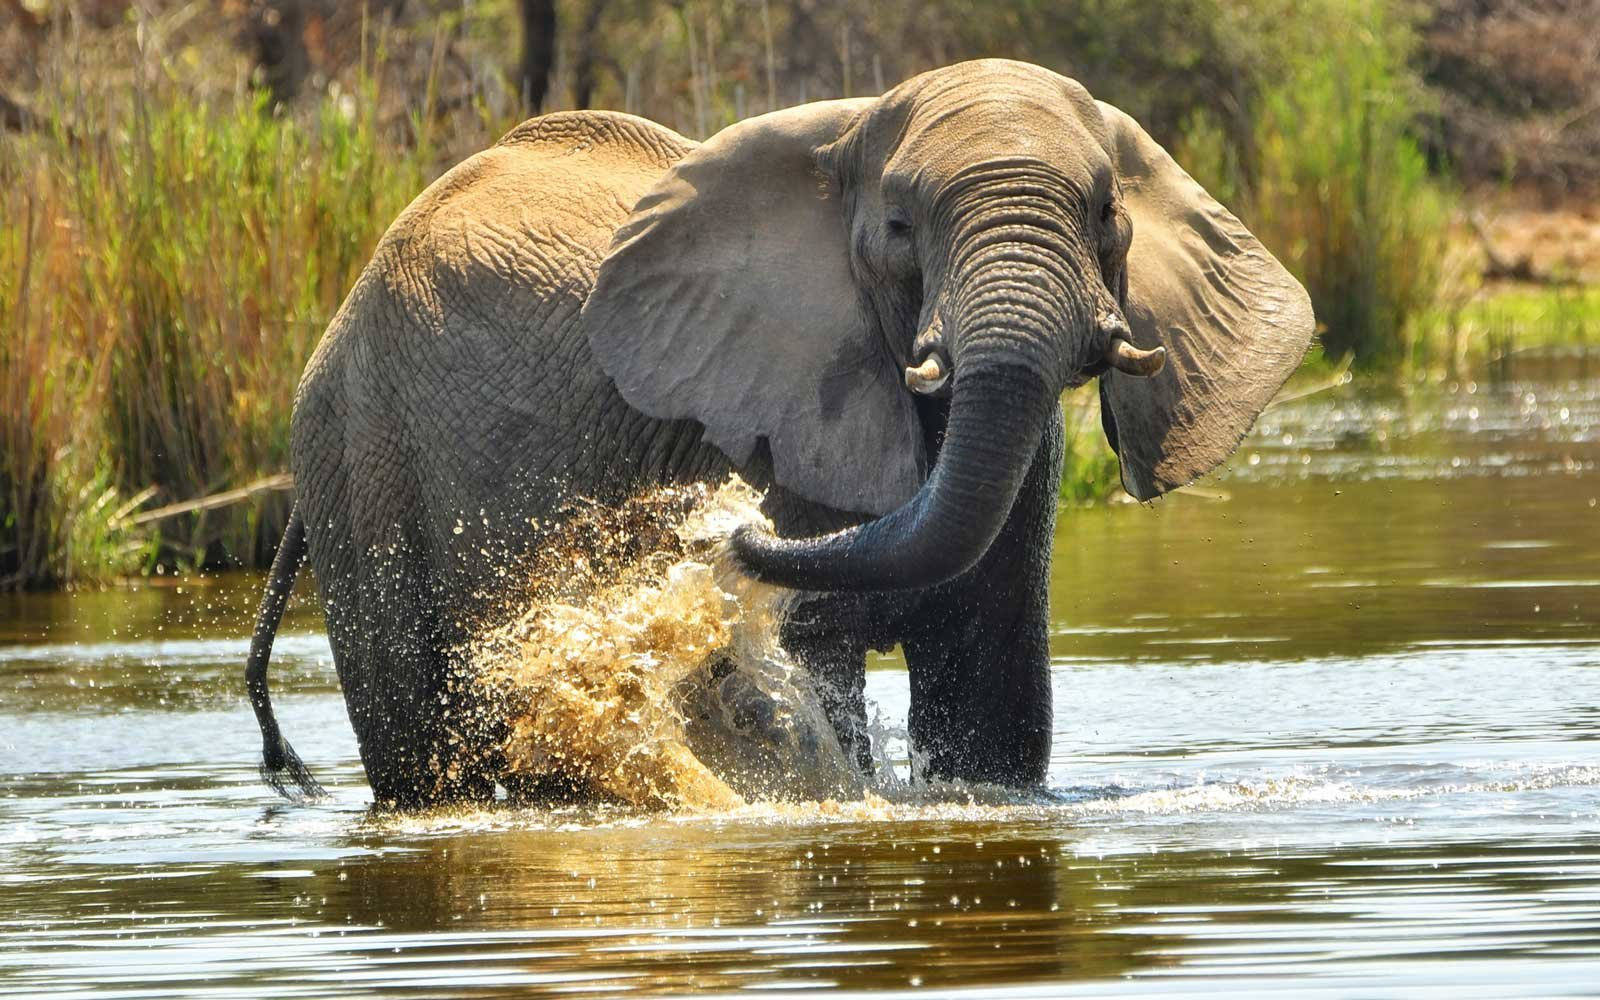 3 elephants in South Africa stopped for a drink at a hotel pool where guests were swimming